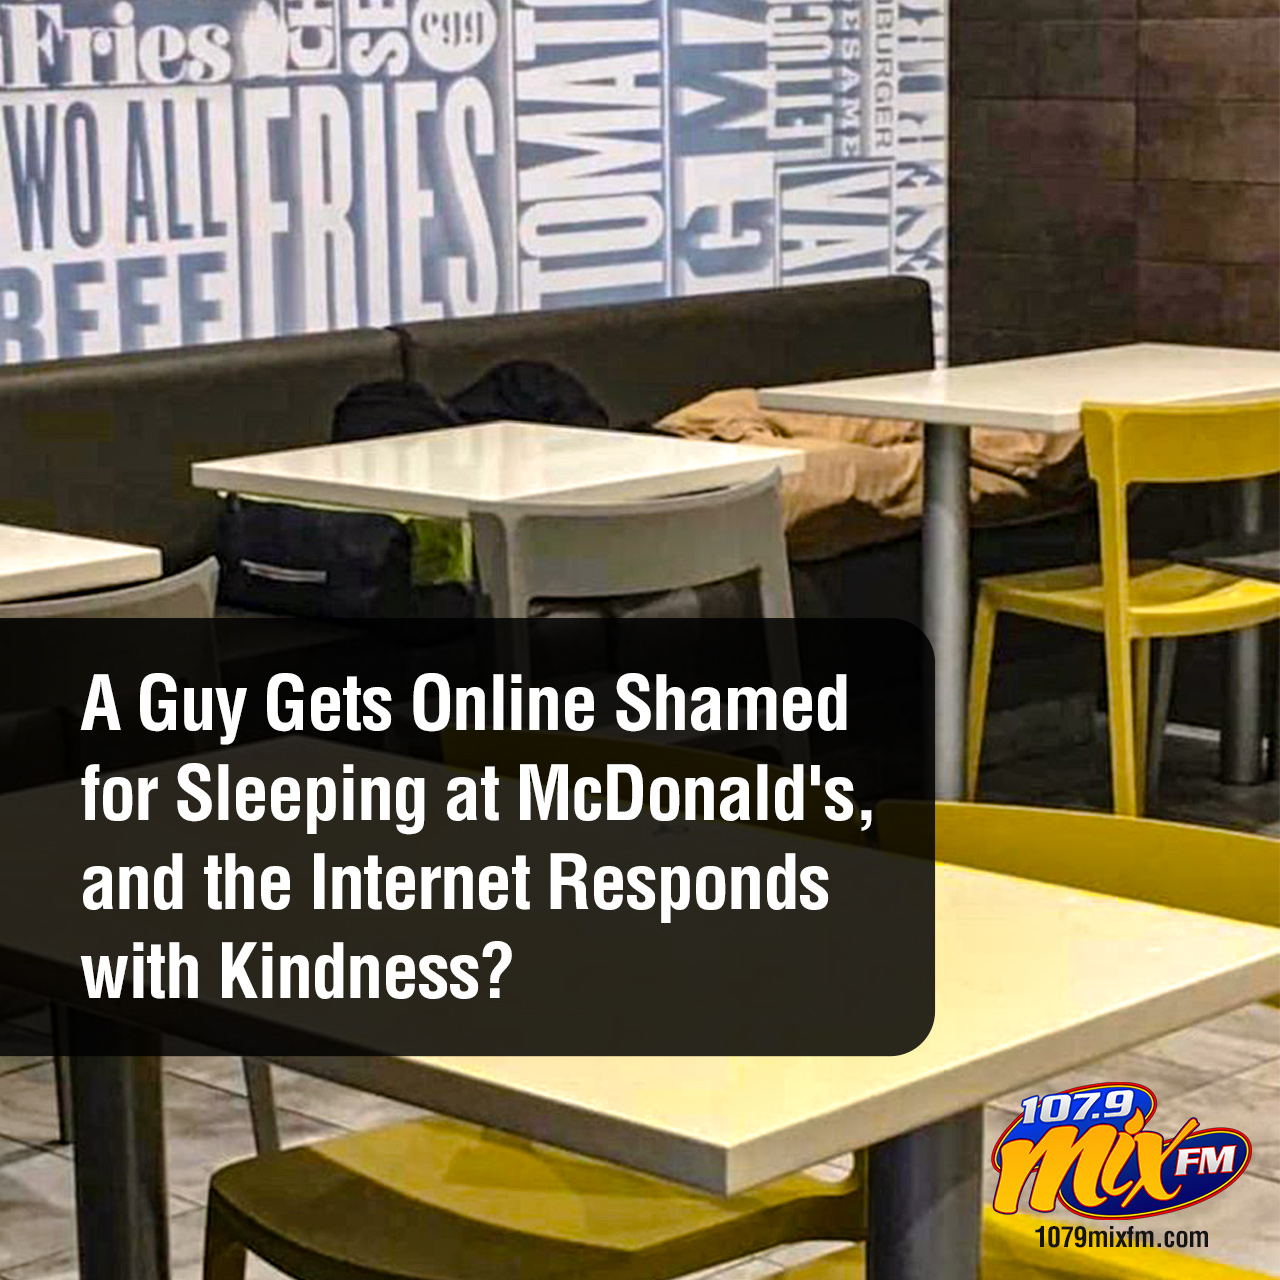 A Guy Gets Online Shamed for Sleeping at McDonald's, and the Internet Responds with Kindness?